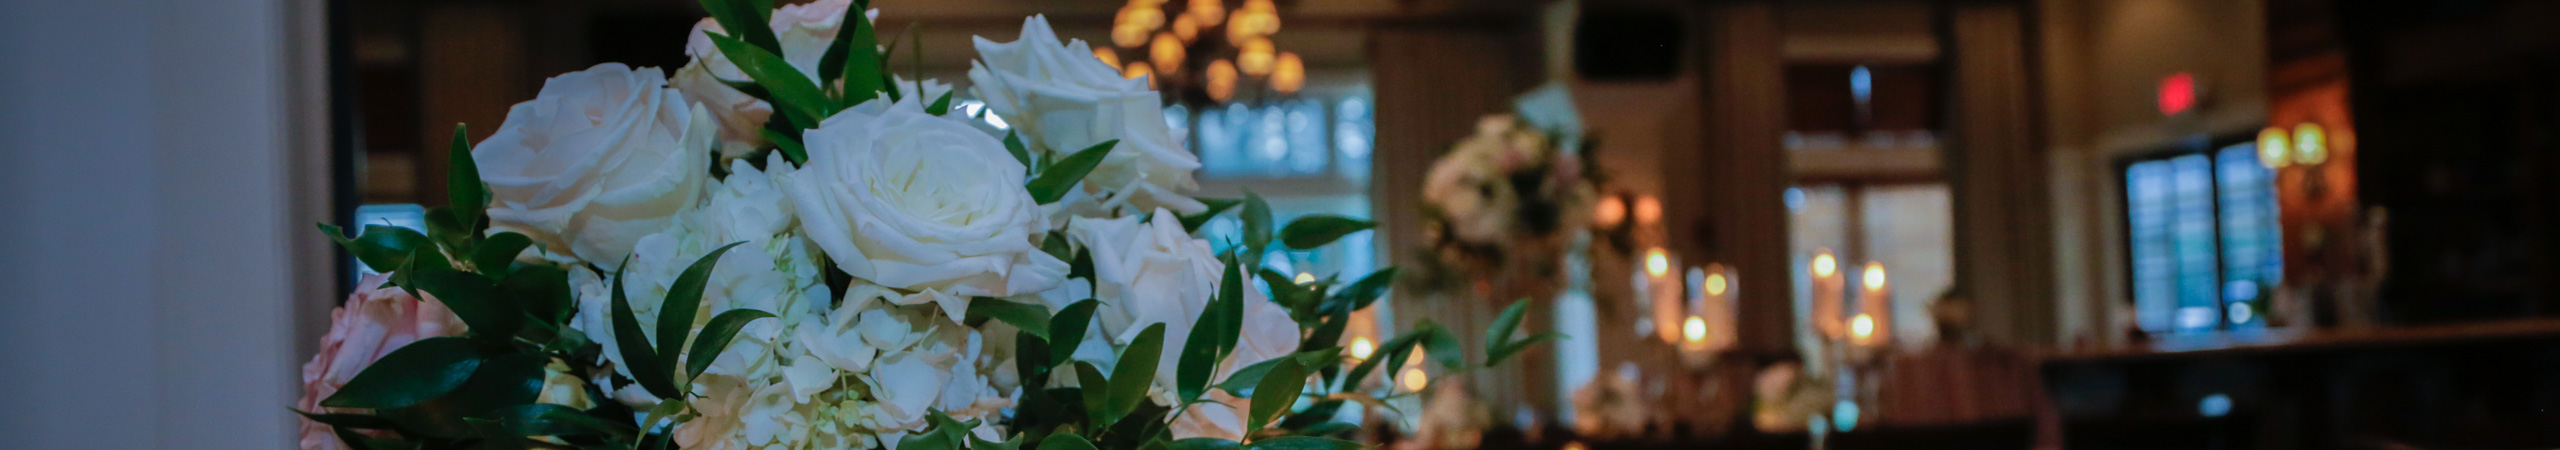 Wedding Event 11/10 – St. Johns Golf and Country Club